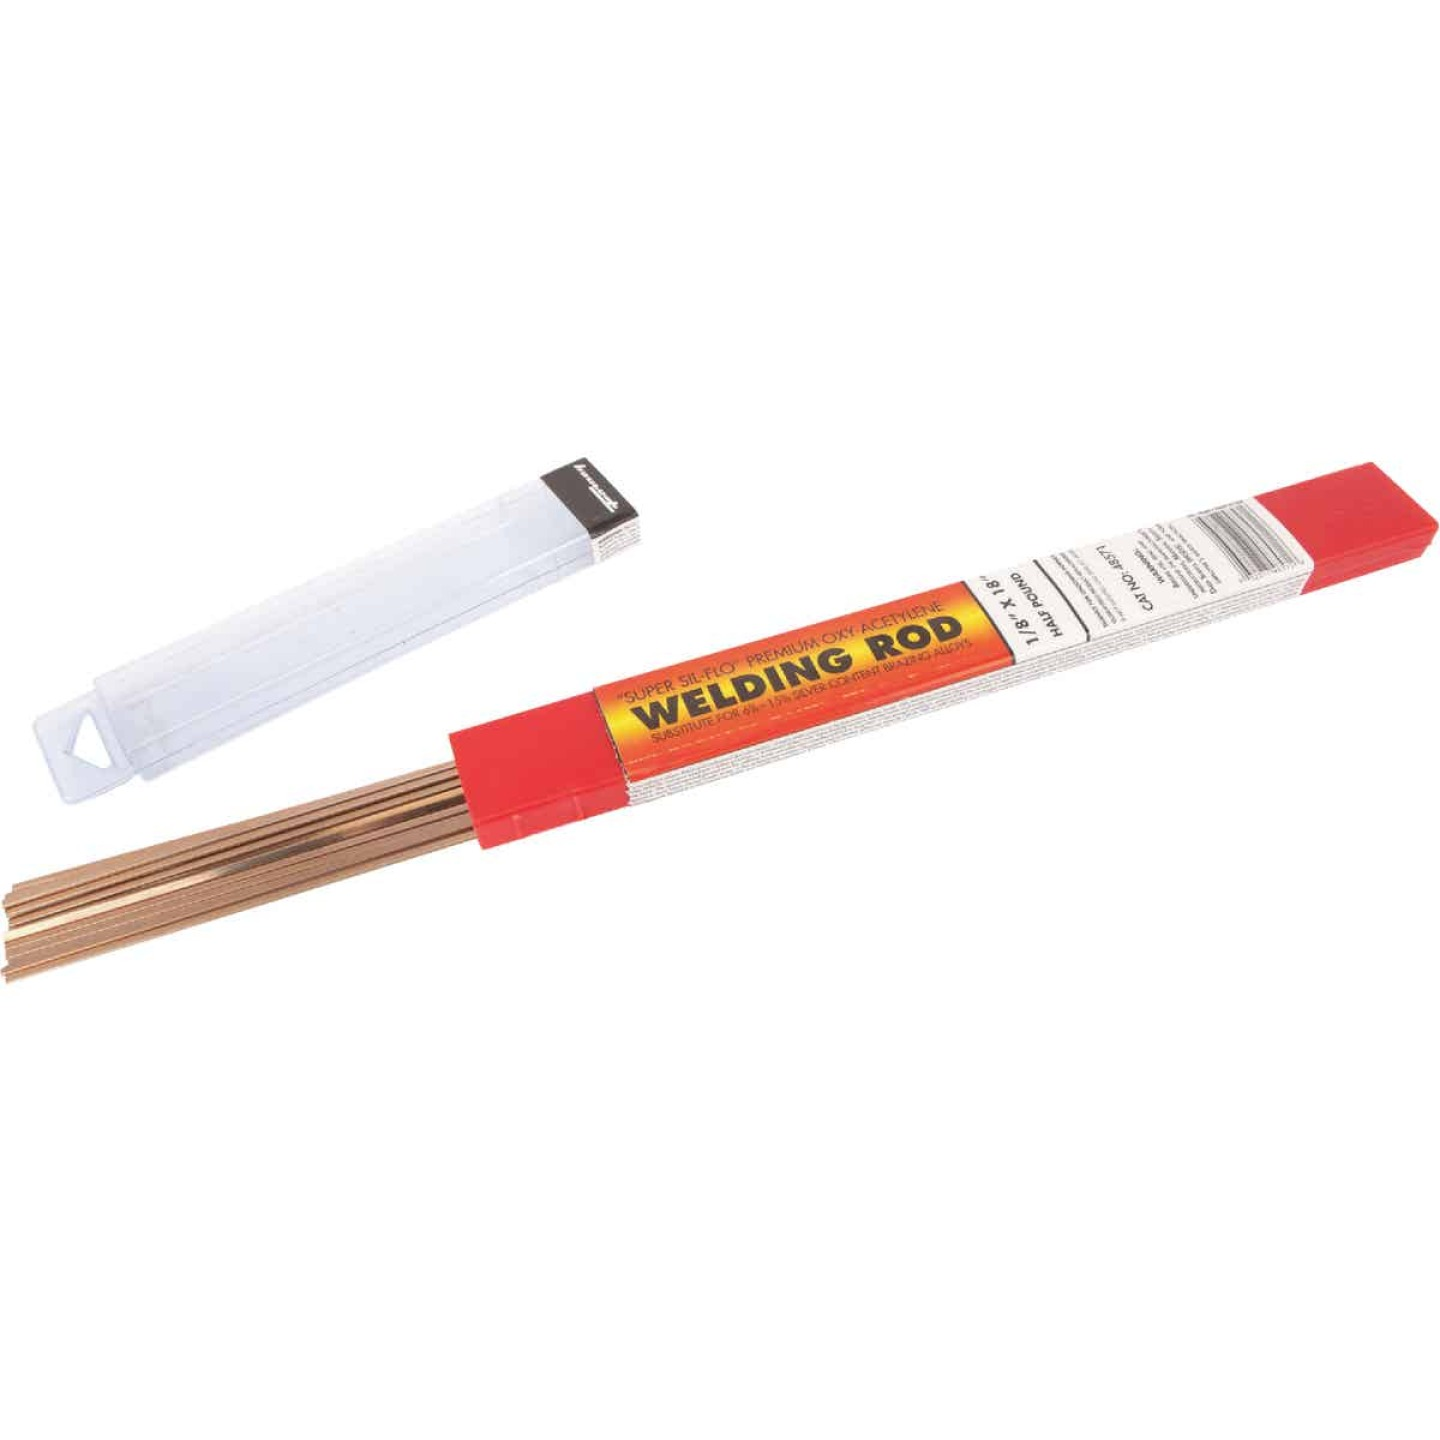 Forney 1/8 In. x 18 In. Super Sil-Flo Brazing Rod, 1/2 Lb. Image 1